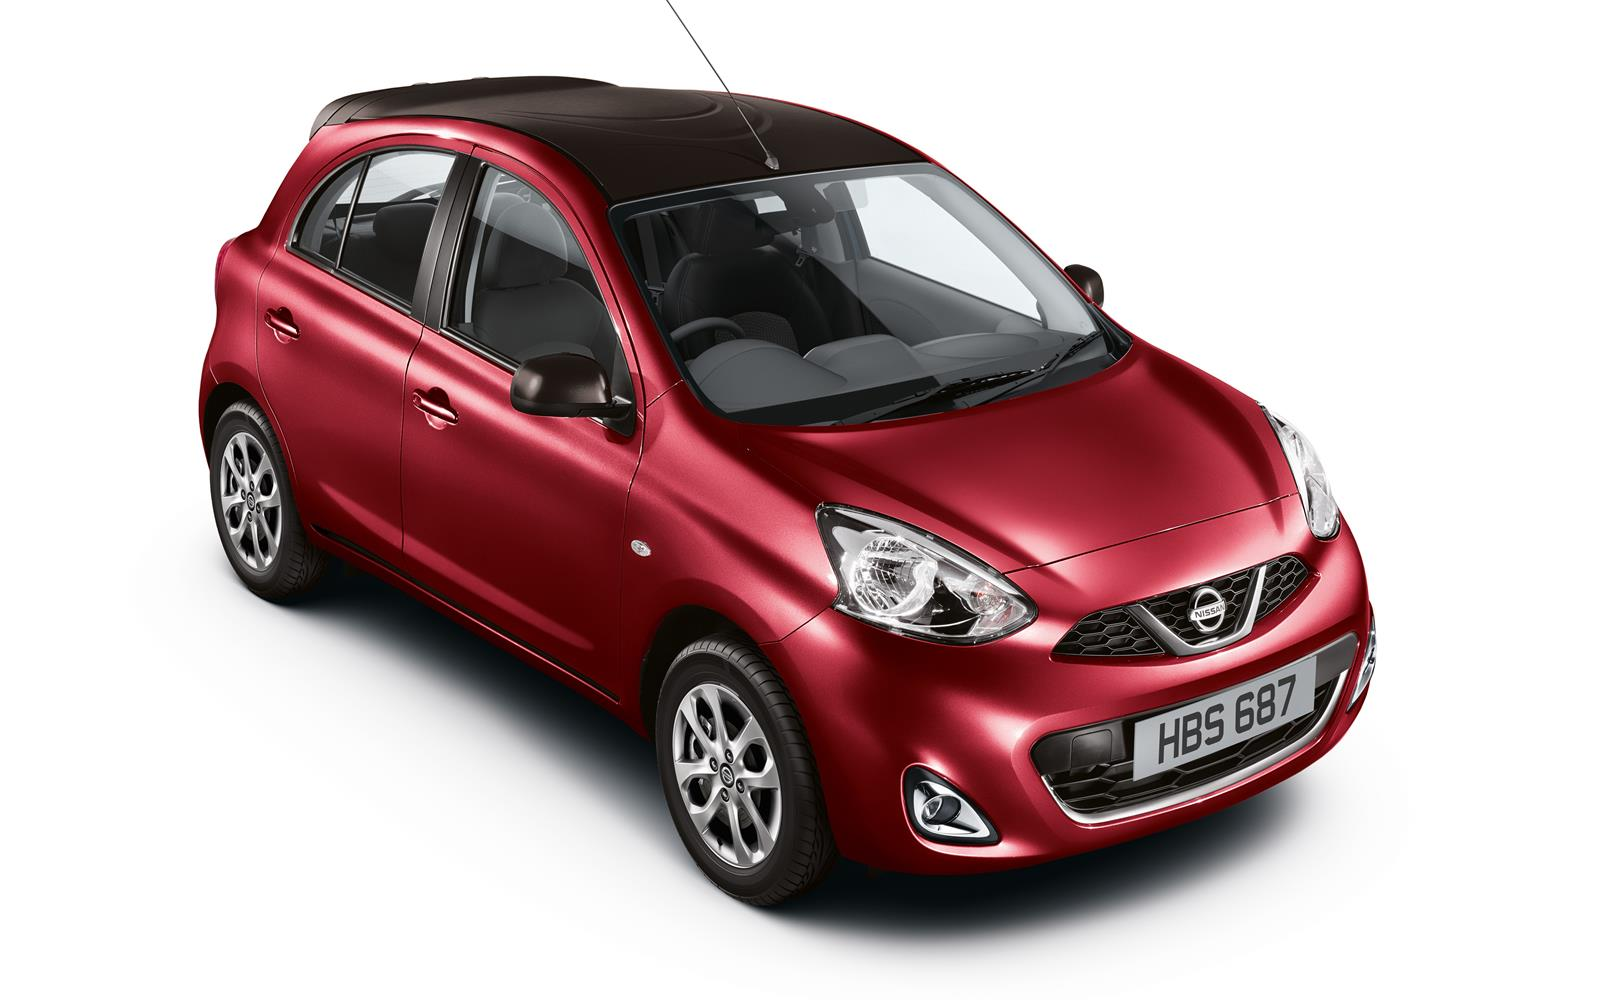 nissan micra limited edition 2014 red front seat driver. Black Bedroom Furniture Sets. Home Design Ideas